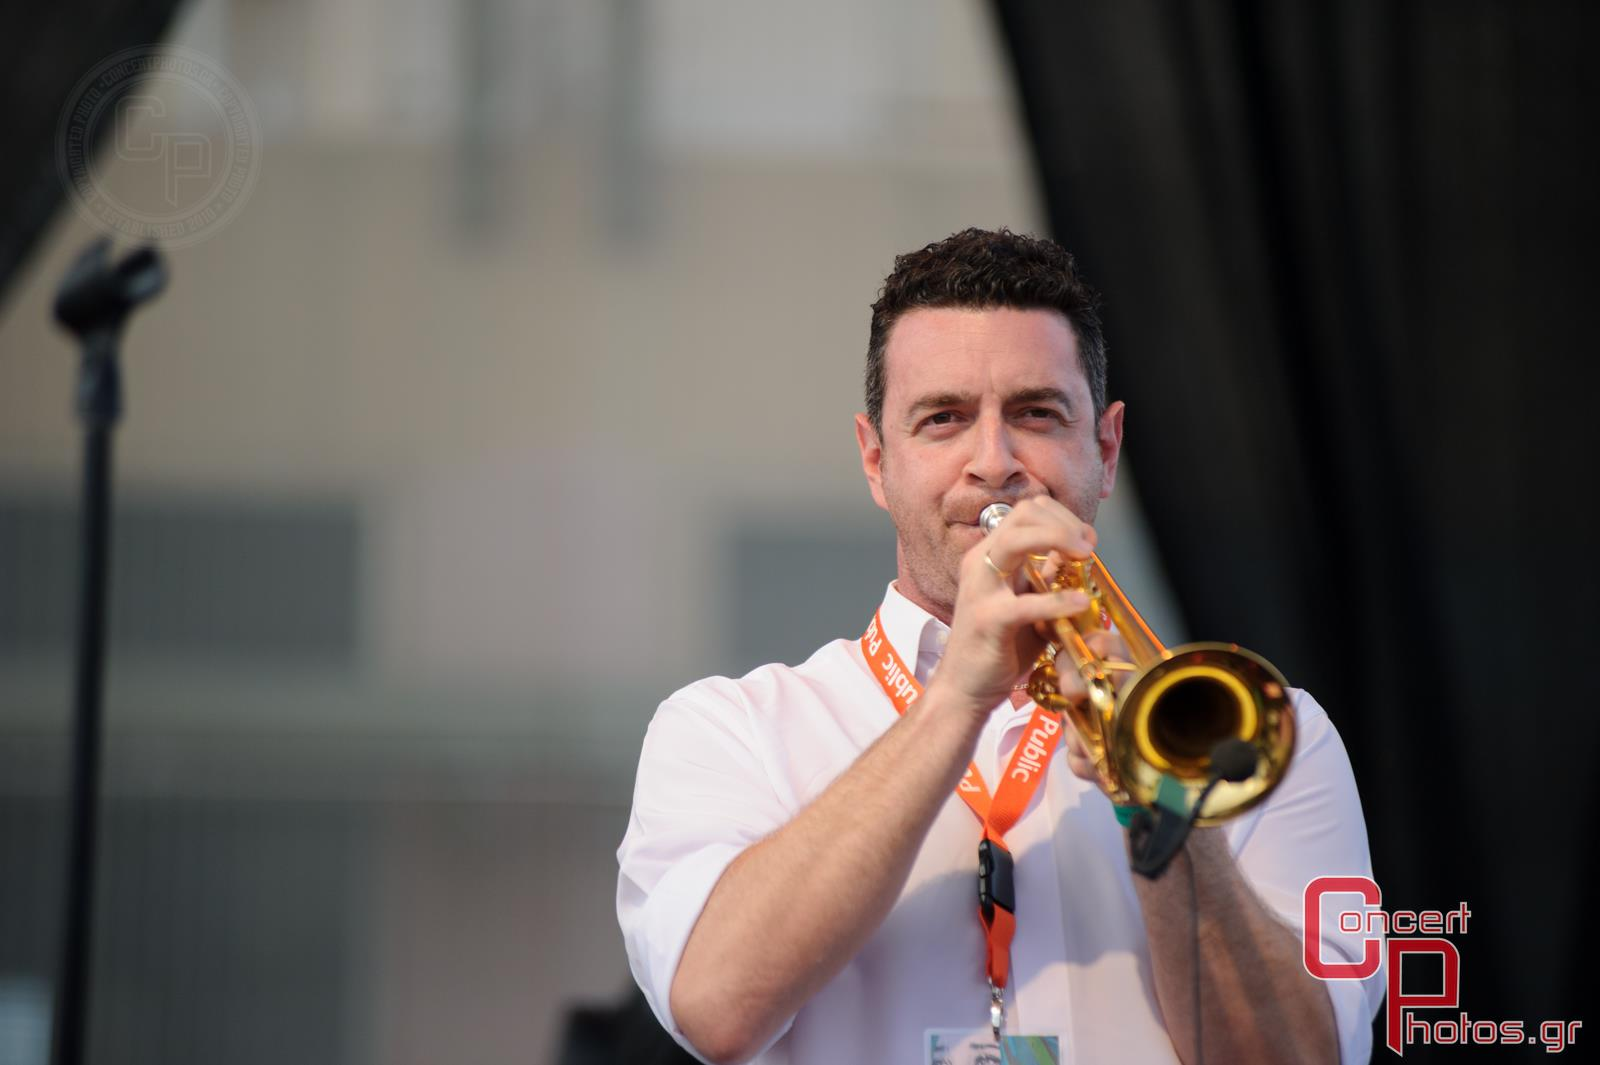 Thievery Corporation Imam Baildi Boogie Belgique Penny And The Swingin' Cats-Thievery Corporation Imam Baildi Boogie Belgique Penny And The Swingin' Cats photographer:  - concertphotos_20140617_19_52_37